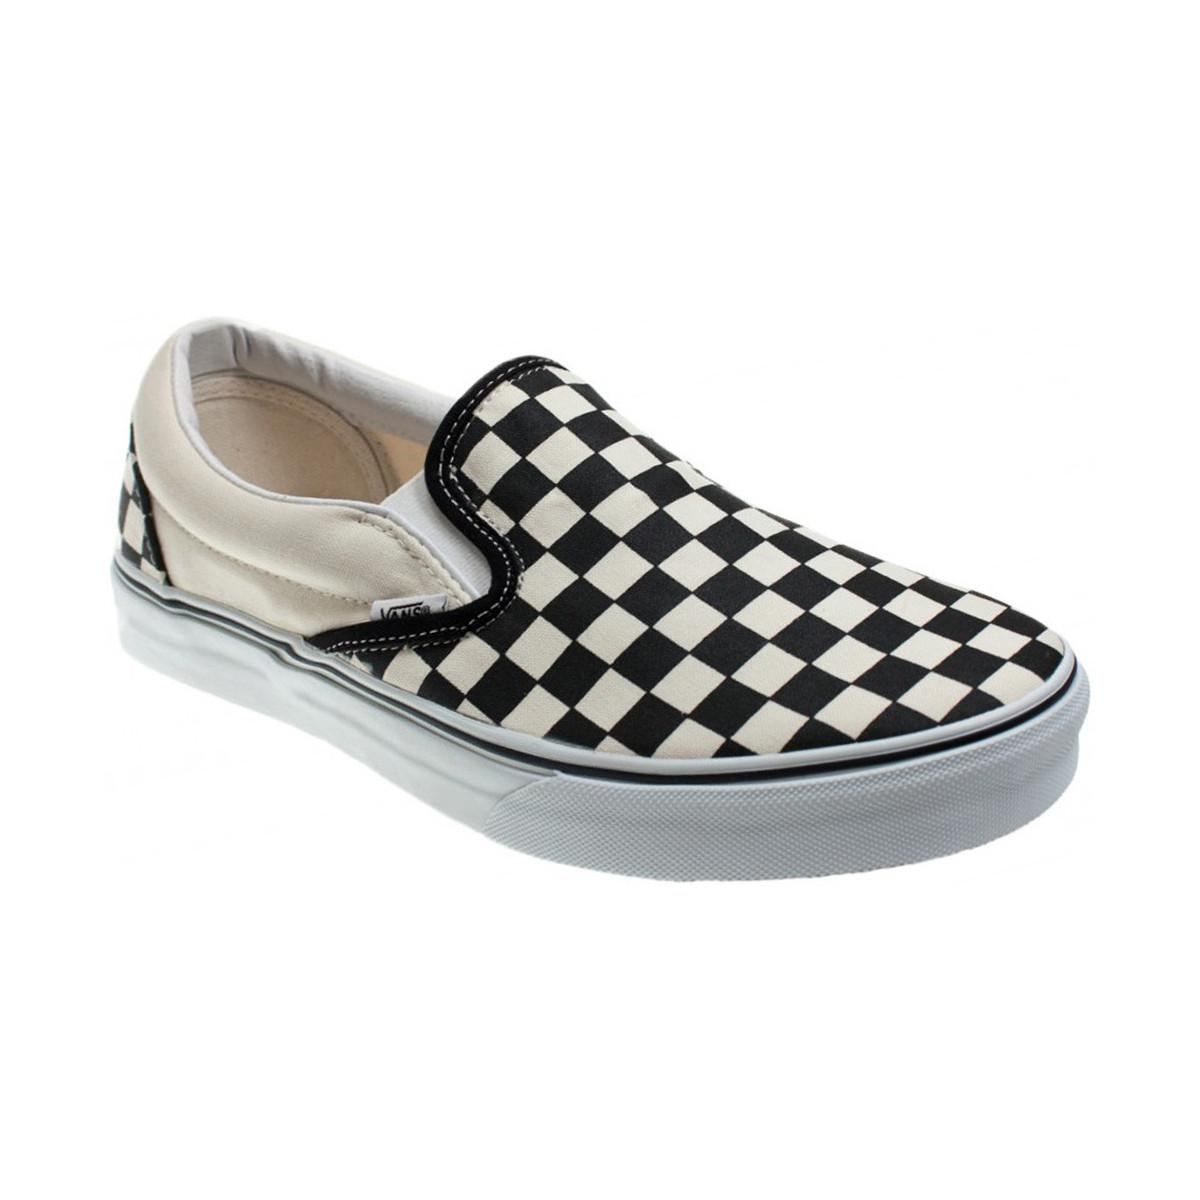 a4af7b2ee9 Vans Classic Black And Cream Checkerboard Slip-on Trainers - Womens ...